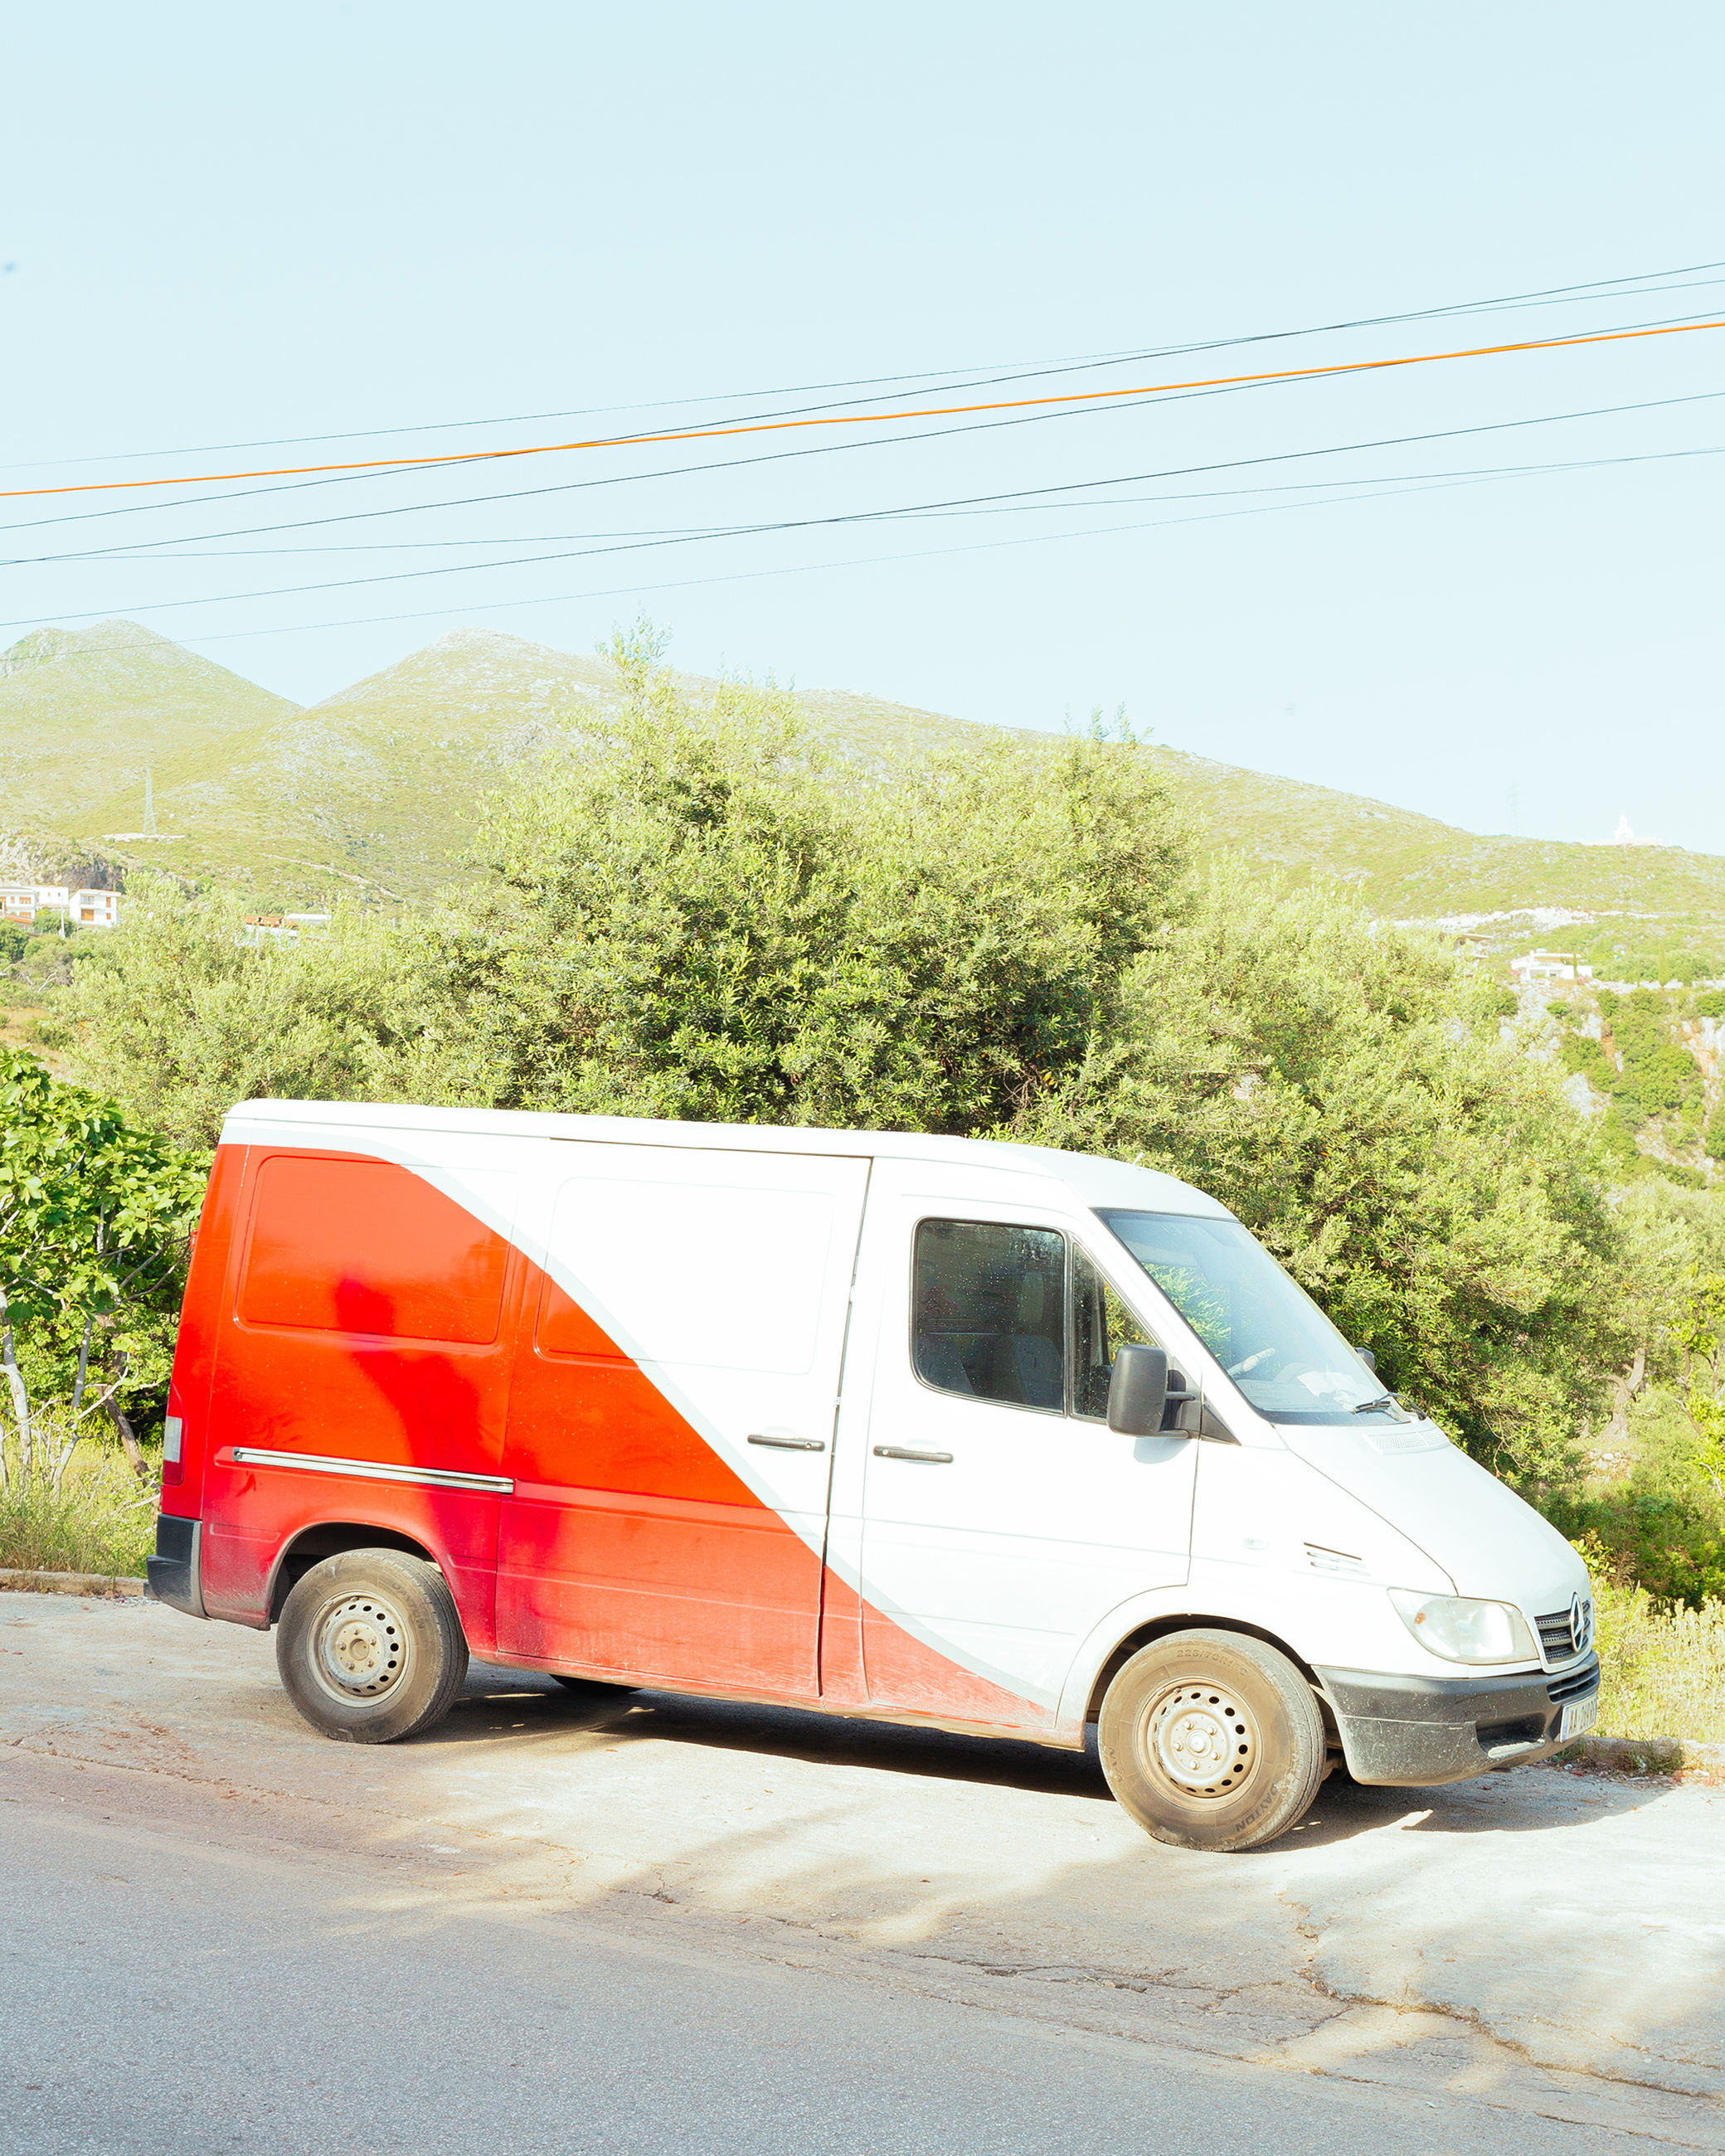 transportation, mode of transportation, land vehicle, motor vehicle, car, road, day, no people, nature, tree, plant, stationary, sky, red, clear sky, mountain, street, van - vehicle, white color, travel